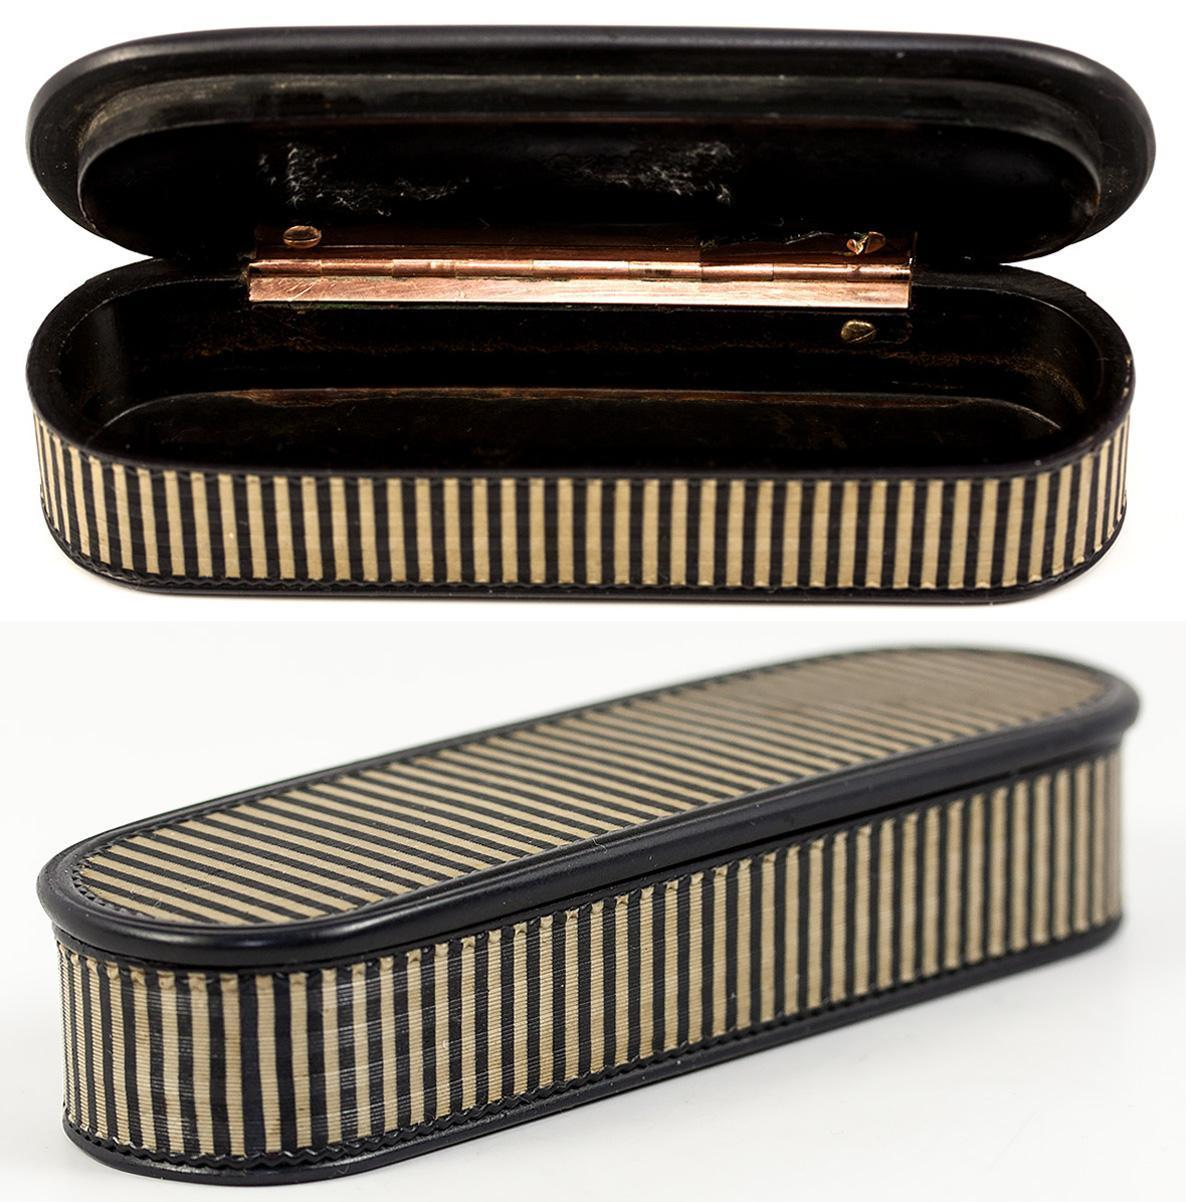 Superb c.1780s French Snuff or Patch Box, Vernis Martin & 18k Gold, Pristine